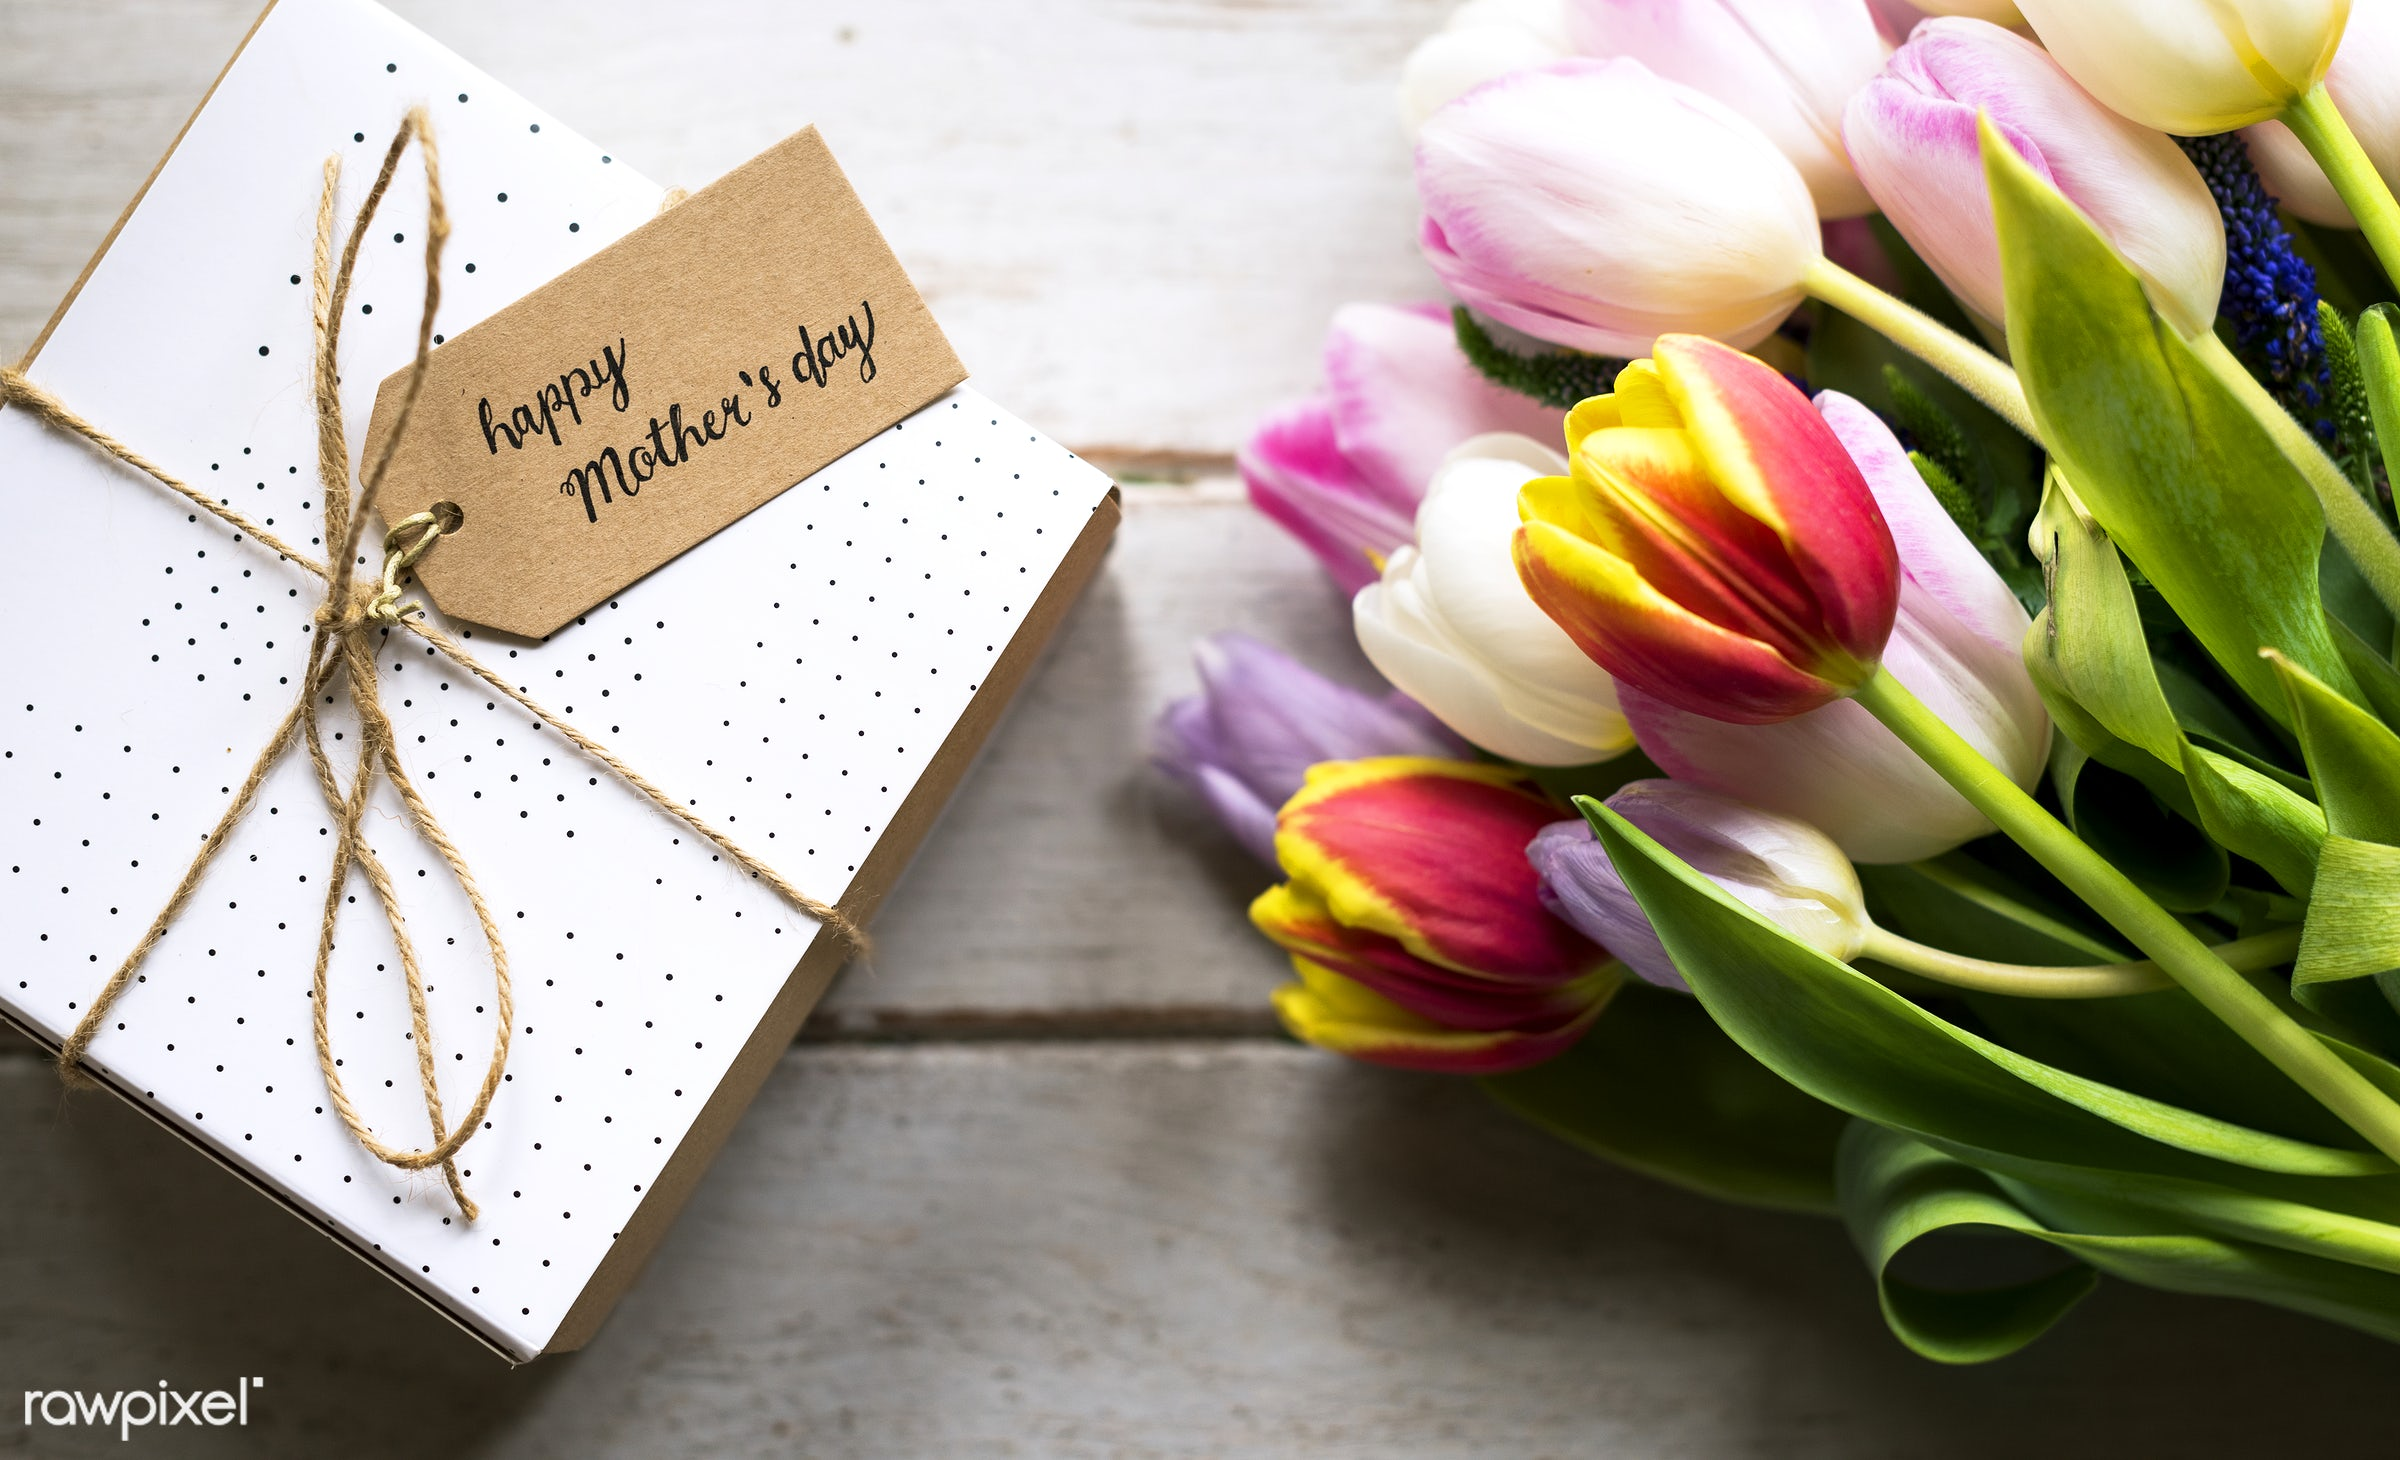 shop, nobody, detail, wish, show, decor, love, nature, care, card, flowers, cheerful, refreshment, florist, present,...